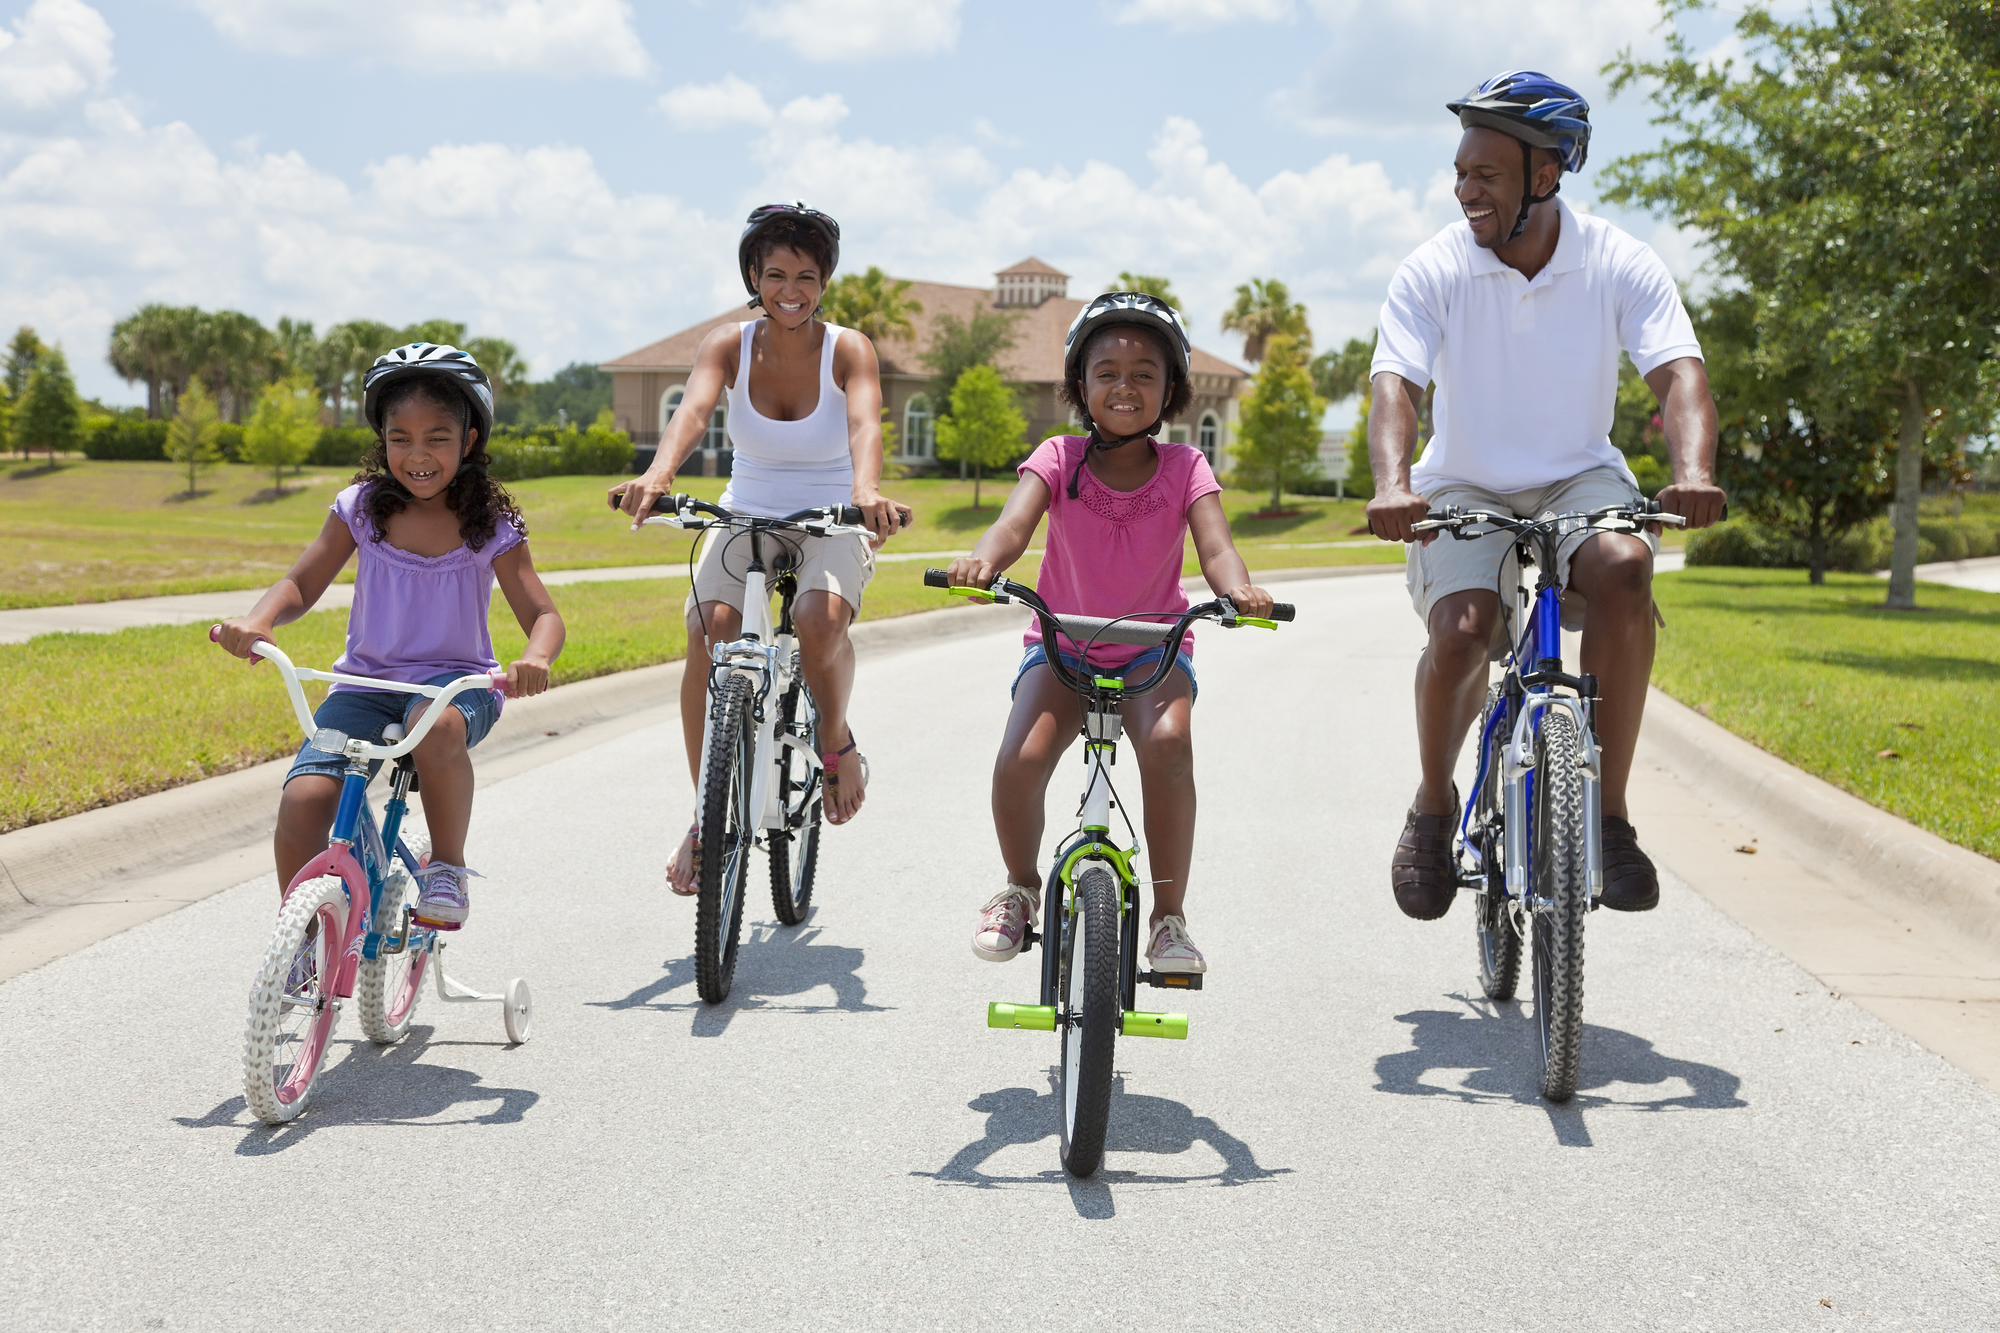 spend time with your family exercising